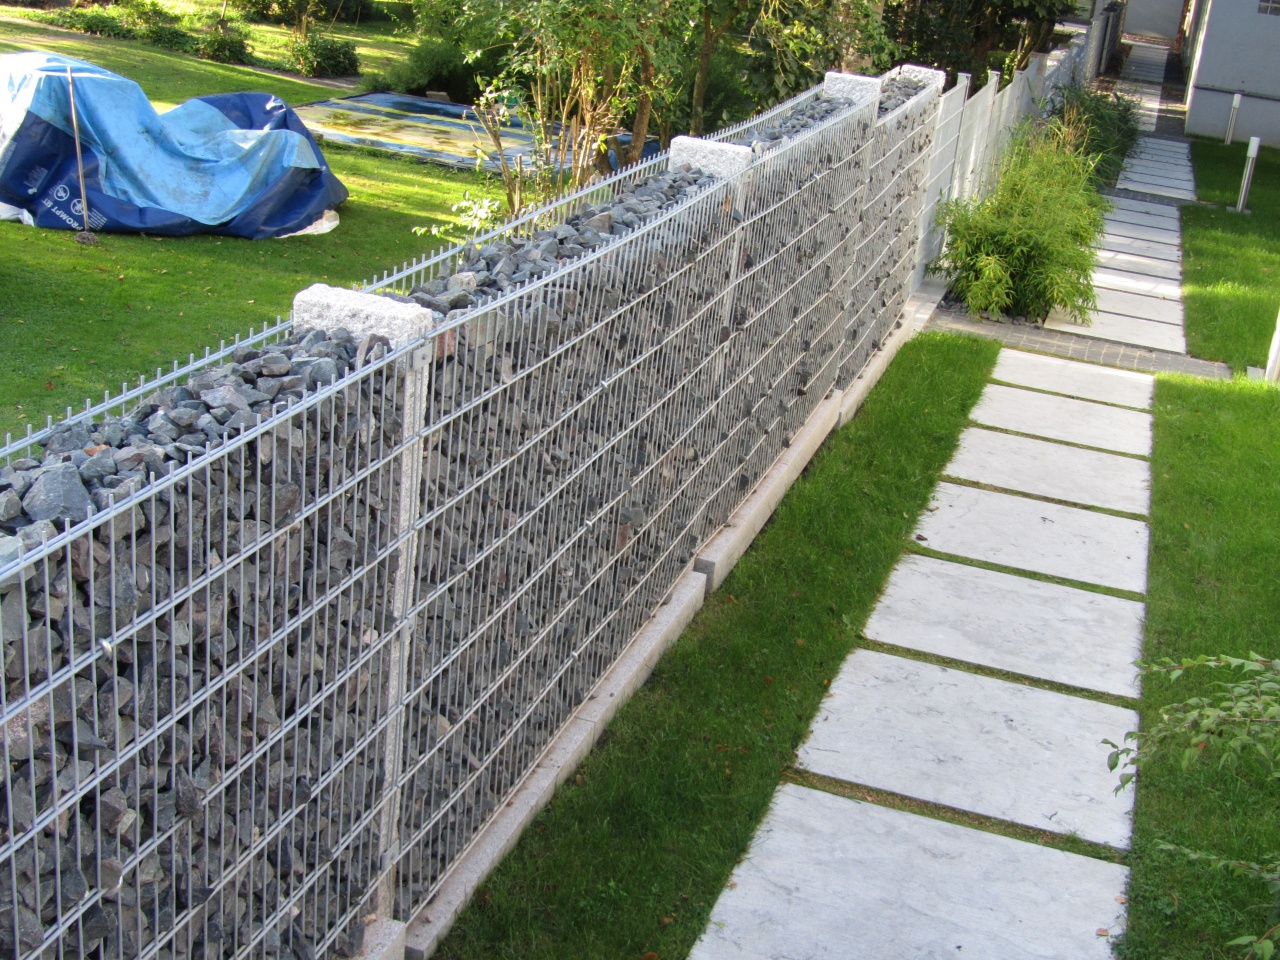 1000 images about gabion walls on pinterest planters. Black Bedroom Furniture Sets. Home Design Ideas